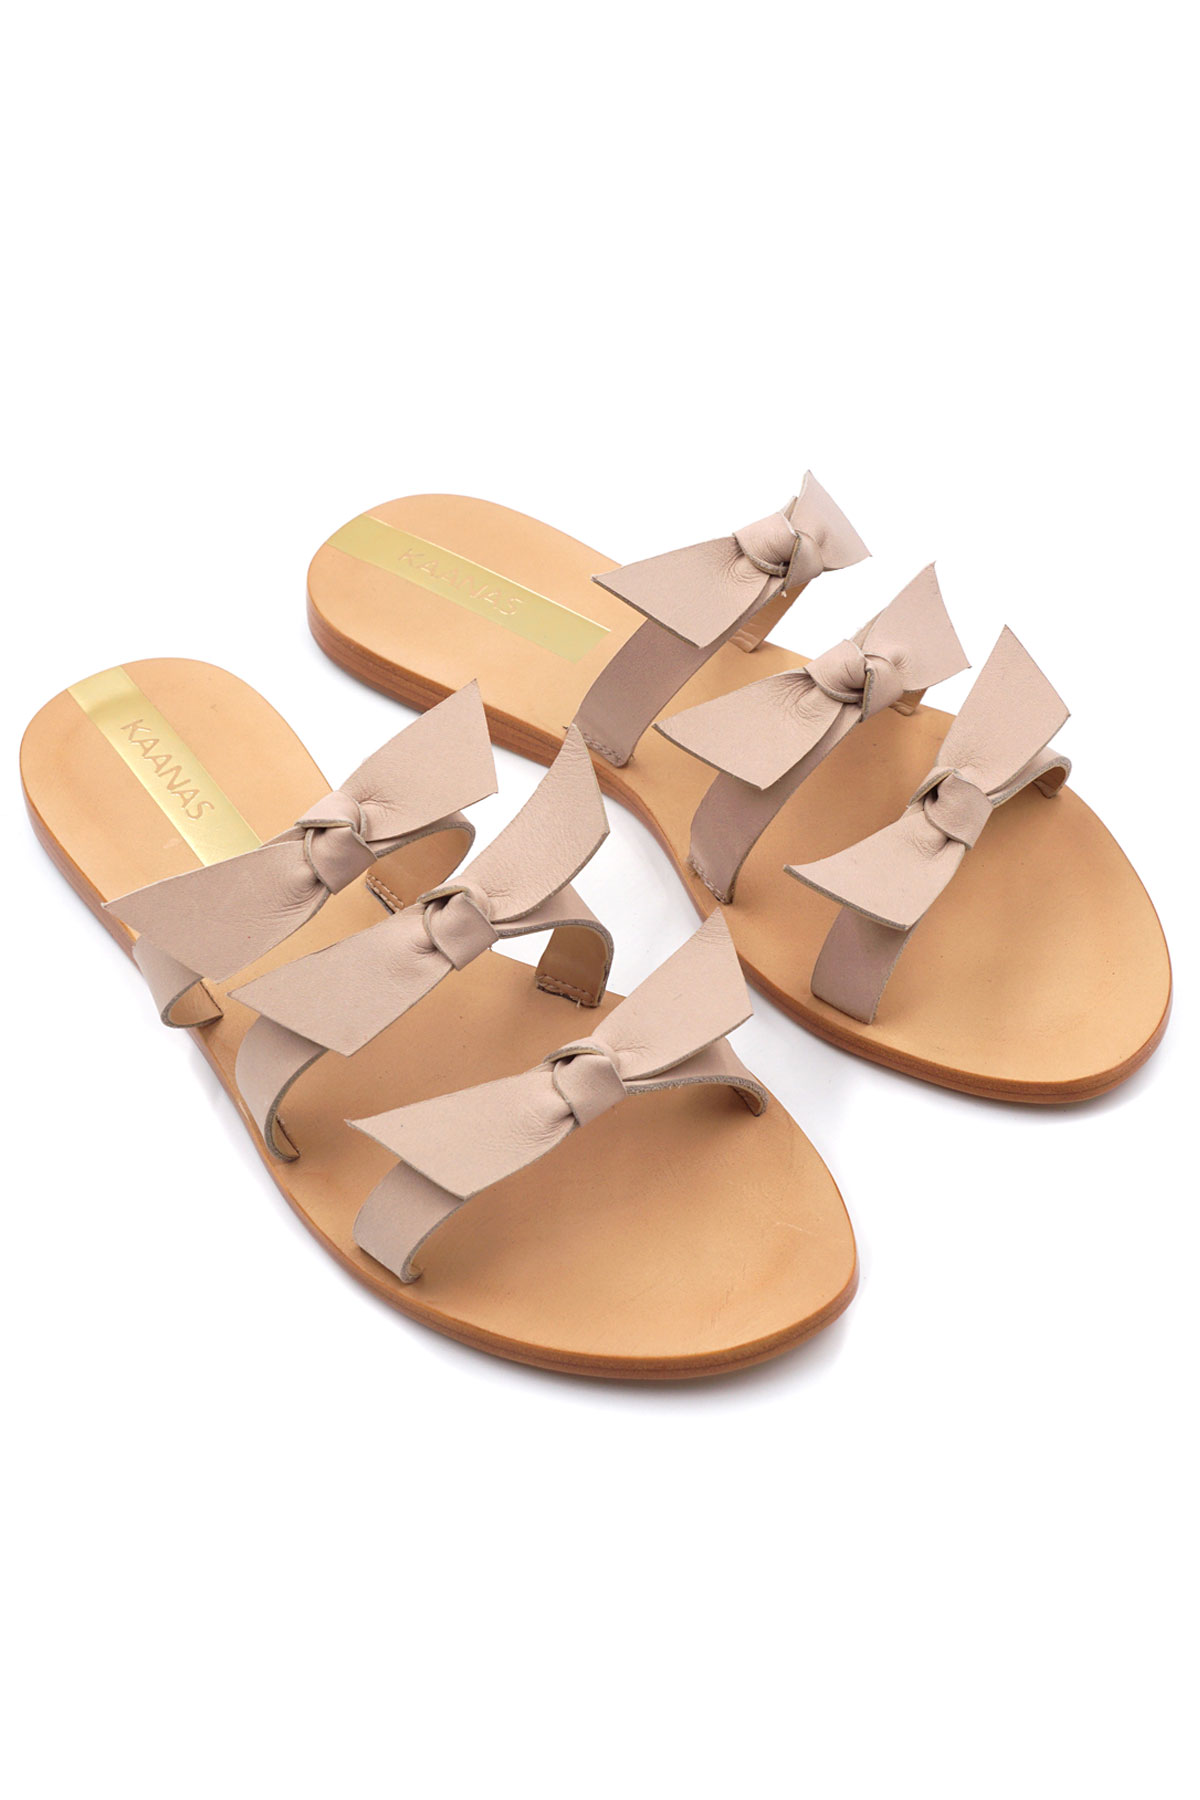 Recife Bow Slides - Nude 1